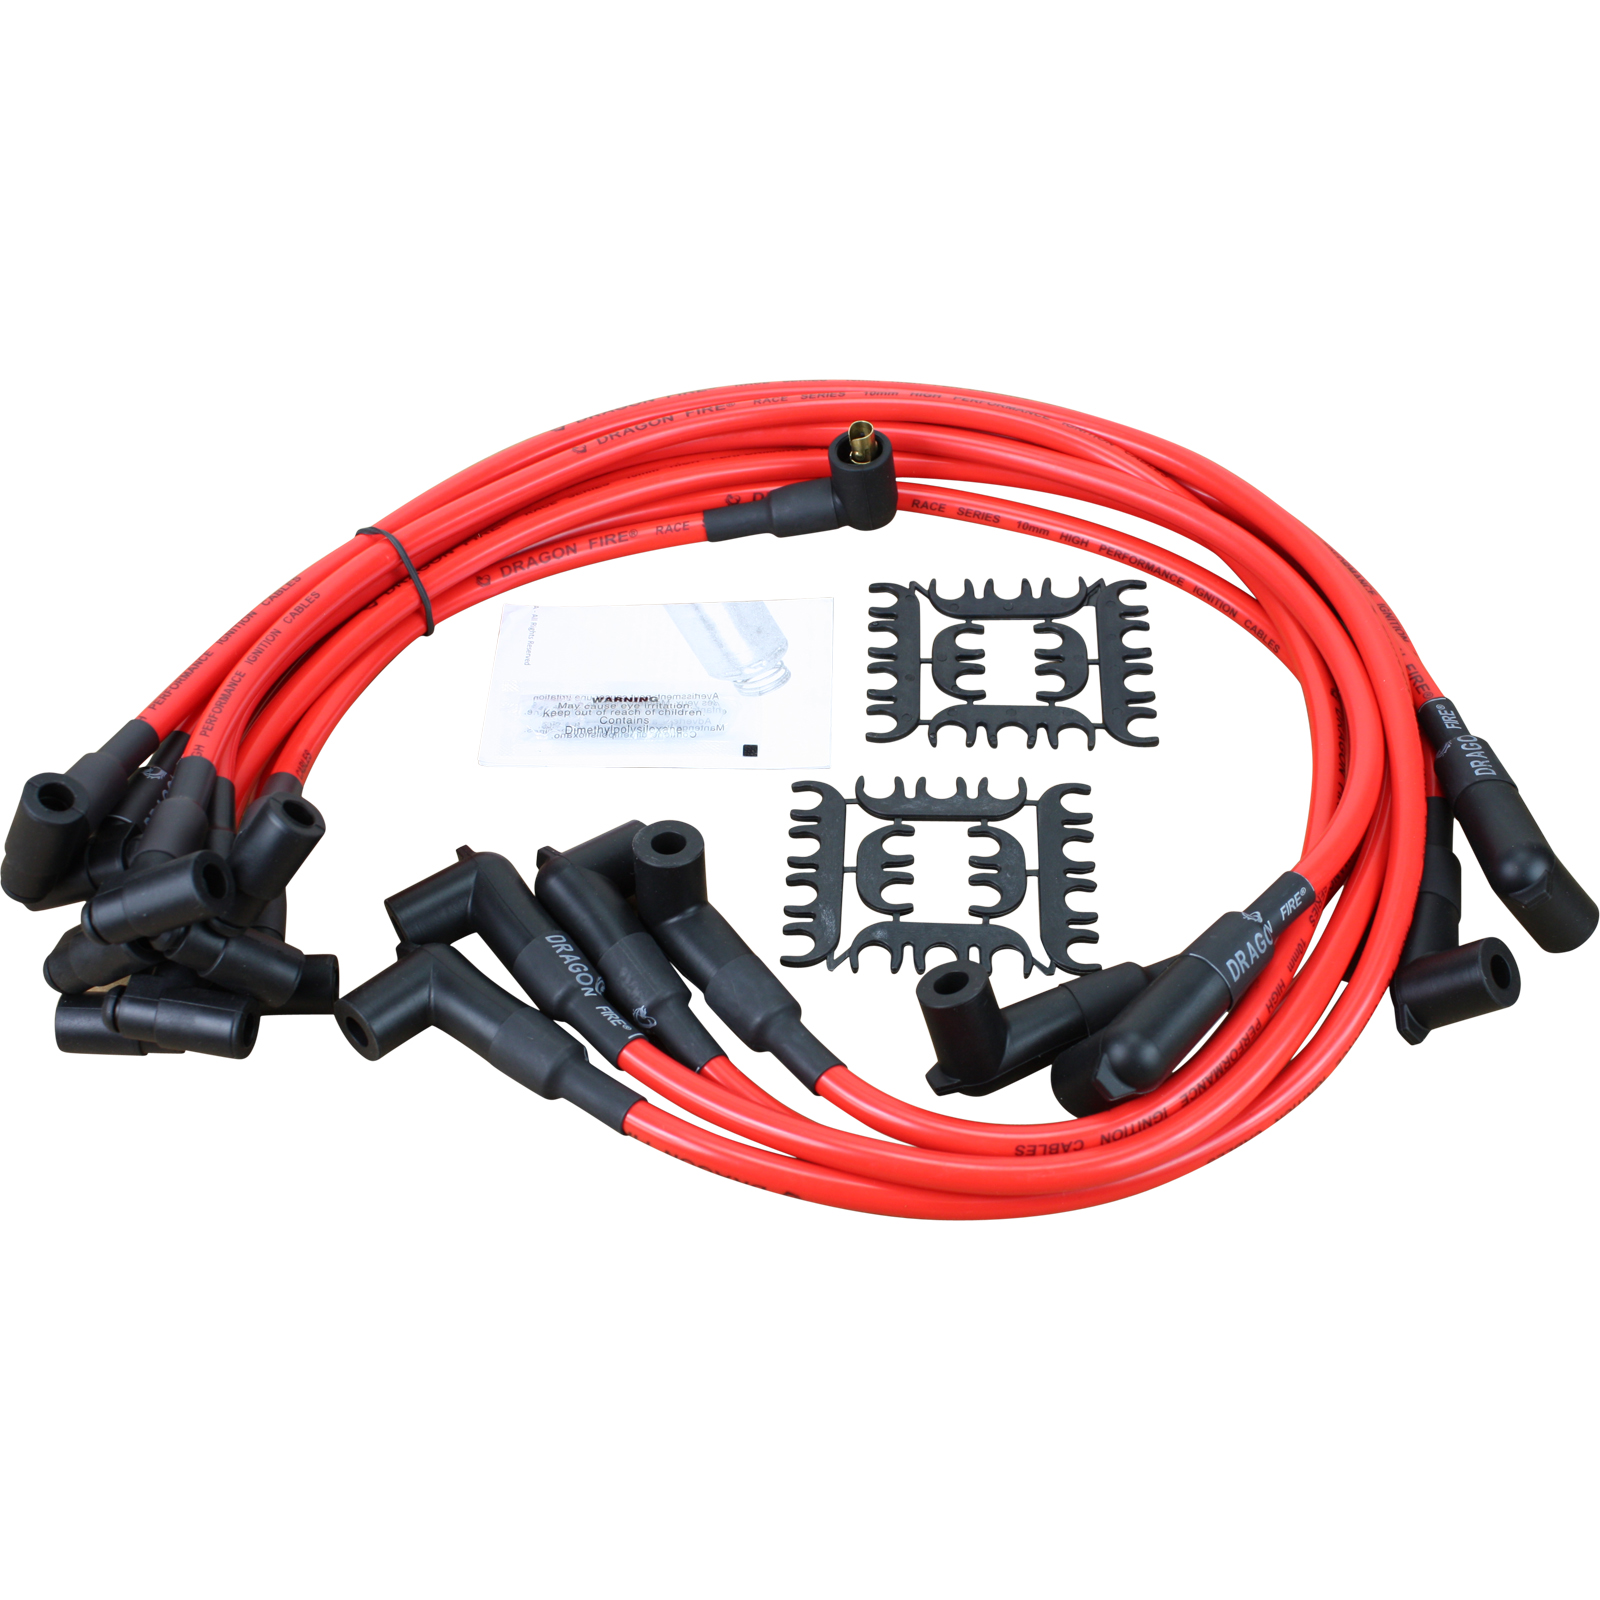 High Performance Spark Plug Wire Set Fit For SBC BBC HEI 350 383 454 10.5MM